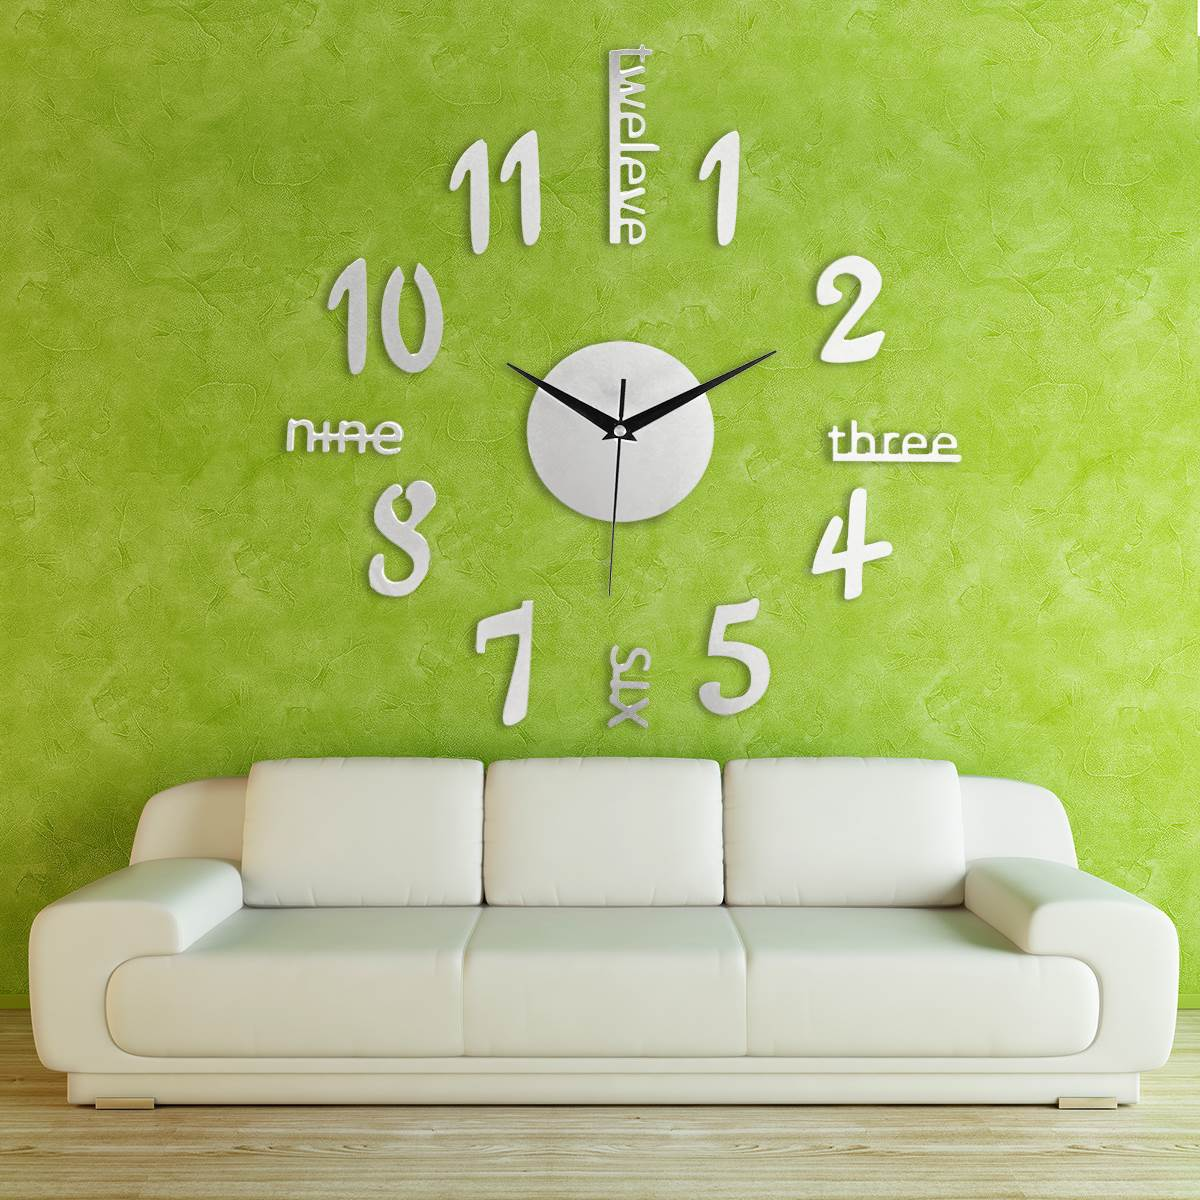 Large Silver Letters For Walls 3D Mirror Acrylic Wall Clock Sticker Surface Large Number Letters